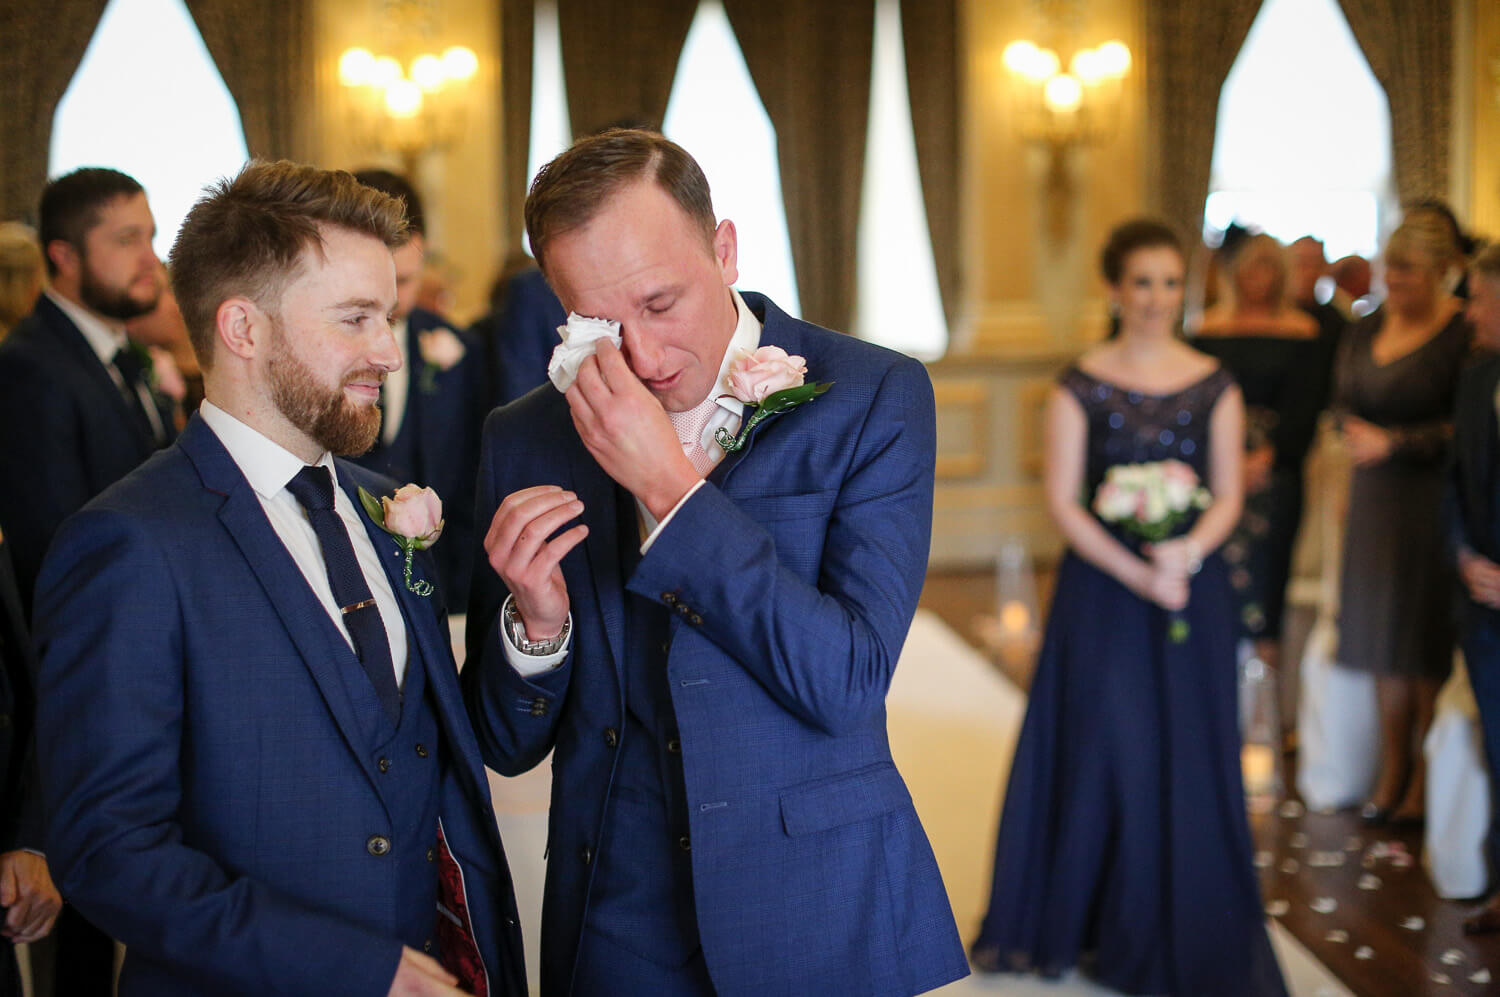 Groom crying Stucco Ball Room wedding ceremony Knowsley Hall wedding photography